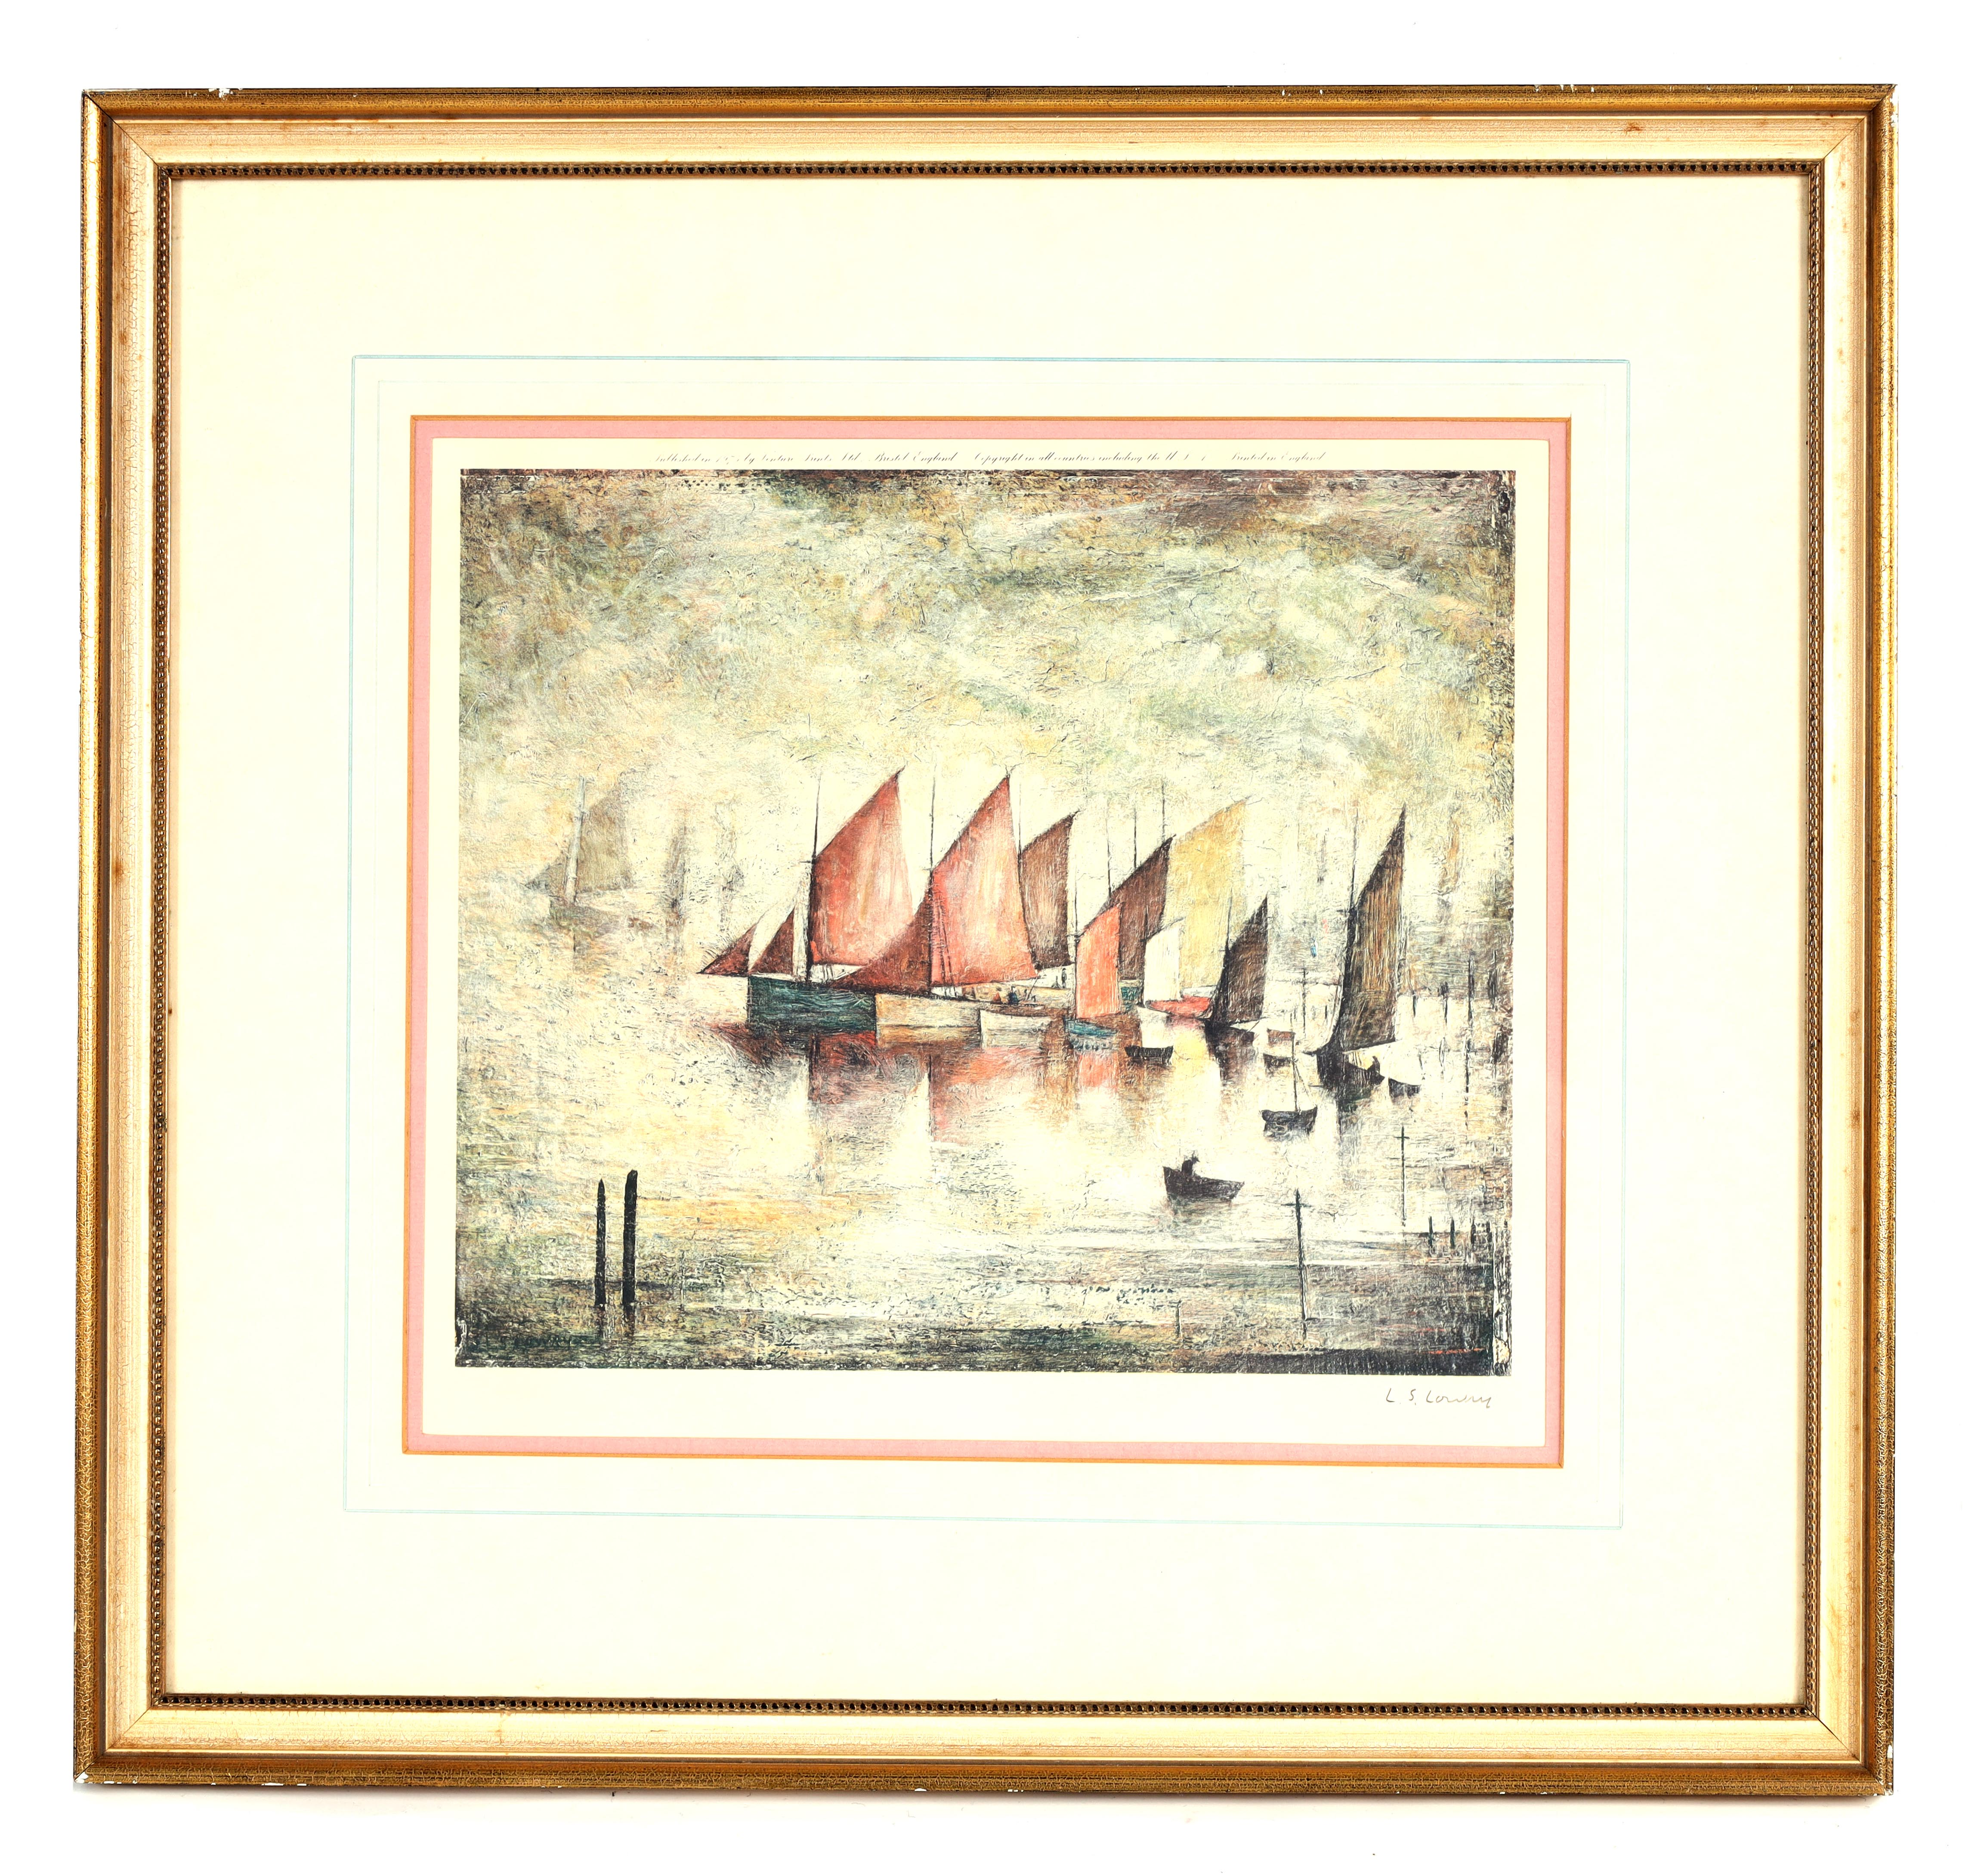 A.R.R. LAURENCE STEPHEN LOWRY (1887-1976) SIGNED PRINT 'SAILING BOATS' signed in pencil in the